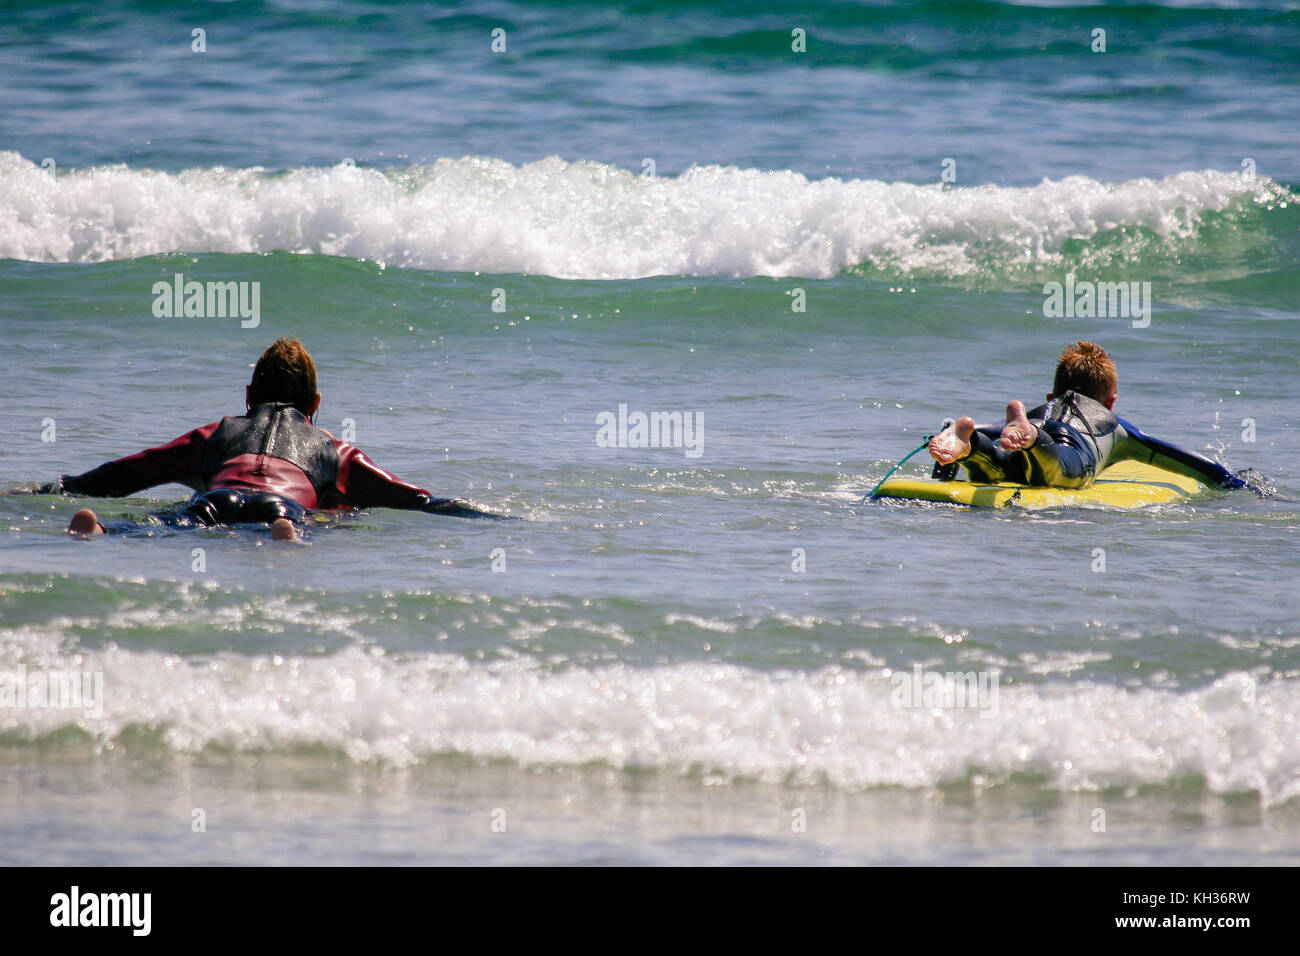 Surfers in the water looking for waves Keel Beach, Achill Island, county Mayo, Ireland - Stock Image